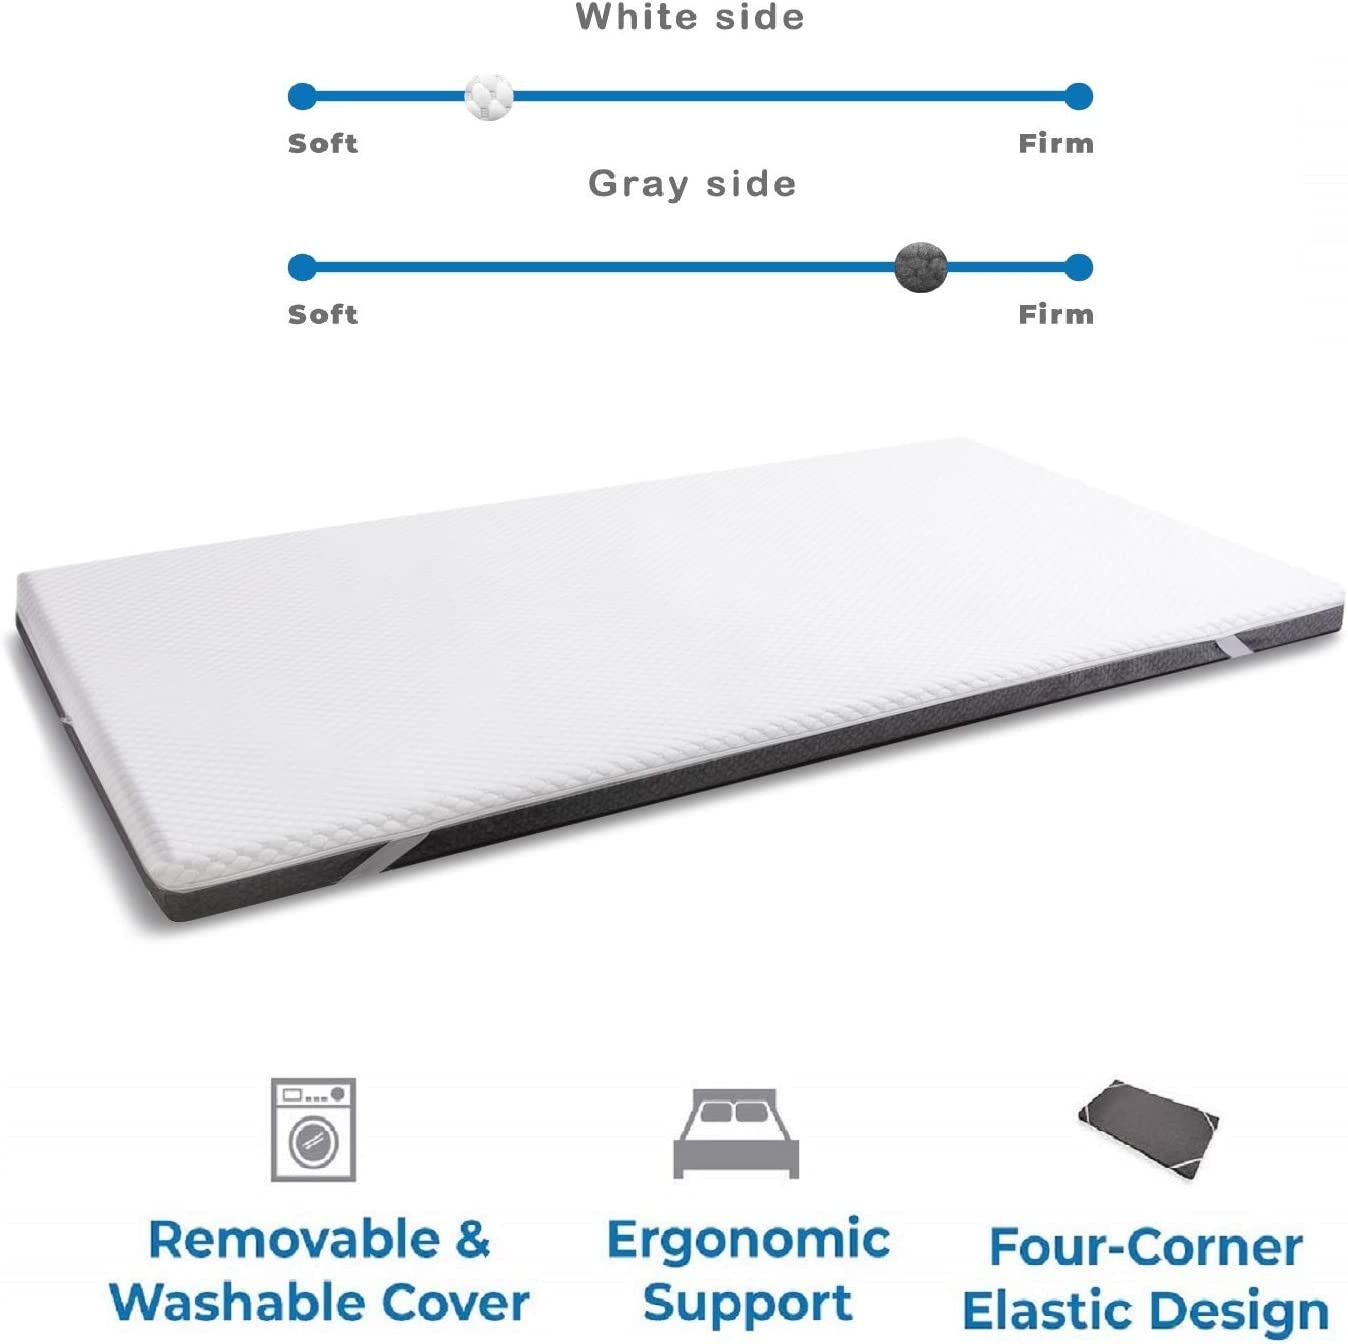 Twin Ventilated 2-Layer Design with Removable Cover for All Seasons wavve 3 Inch Gel Infused Memory Foam Mattress Topper